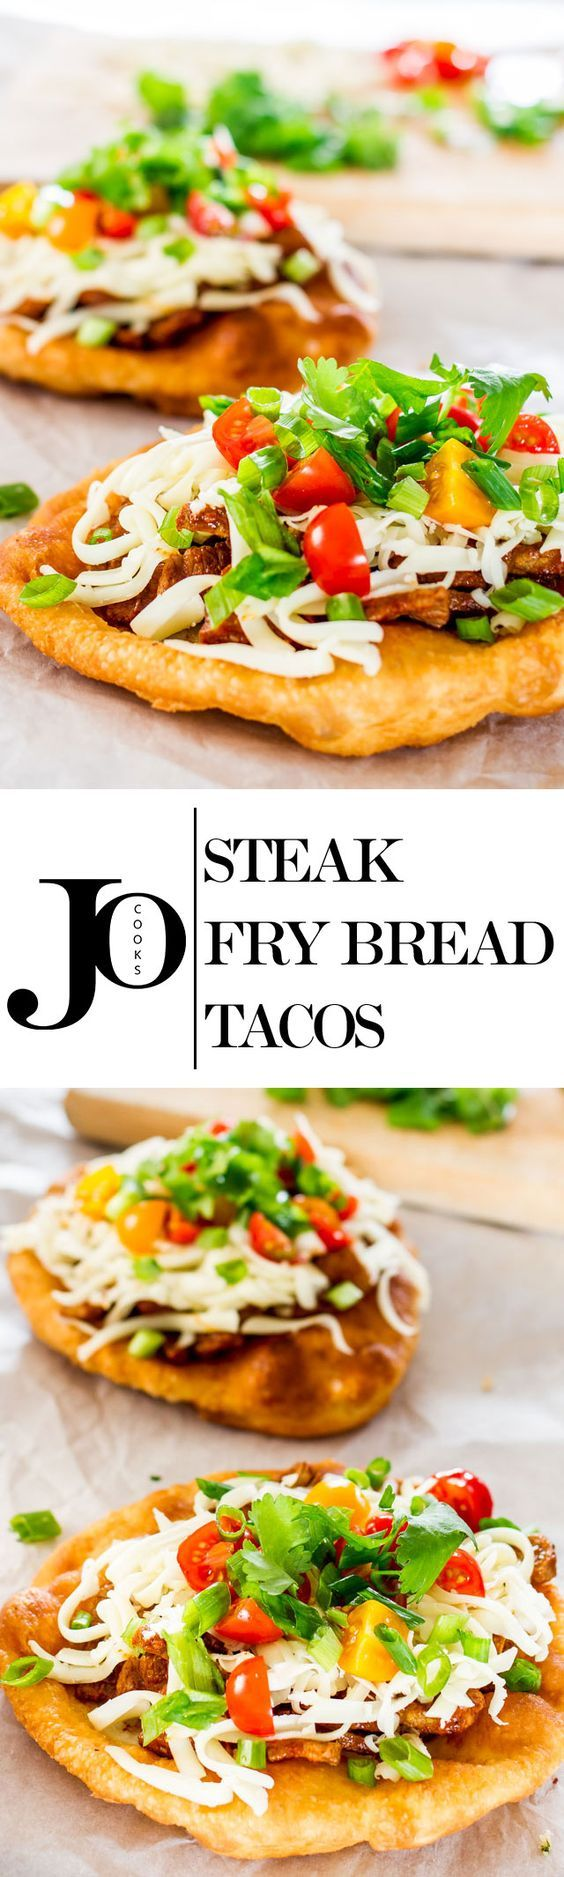 Steak Fry Bread Tacos - a delicious and fun meal to enjoy with your family! Fry bread topped with yummy flank steak, cheese, tomatoes, and green onions.